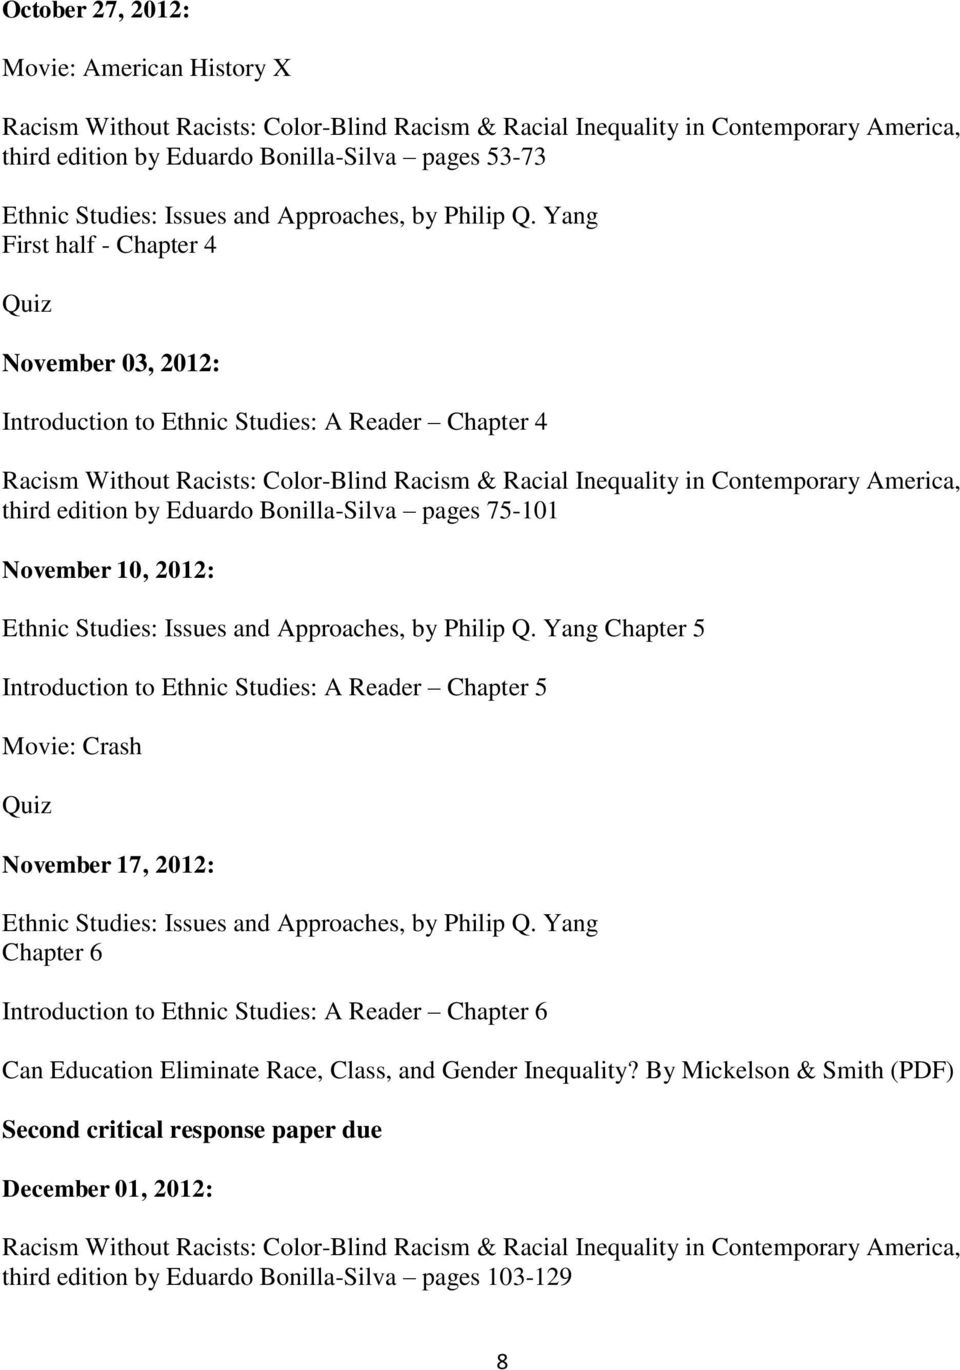 and Approaches, by Philip Q. Yang Chapter 5 Introduction to Ethnic Studies: A Reader Chapter 5 Movie: Crash Quiz November 17, 2012: Ethnic Studies: Issues and Approaches, by Philip Q.